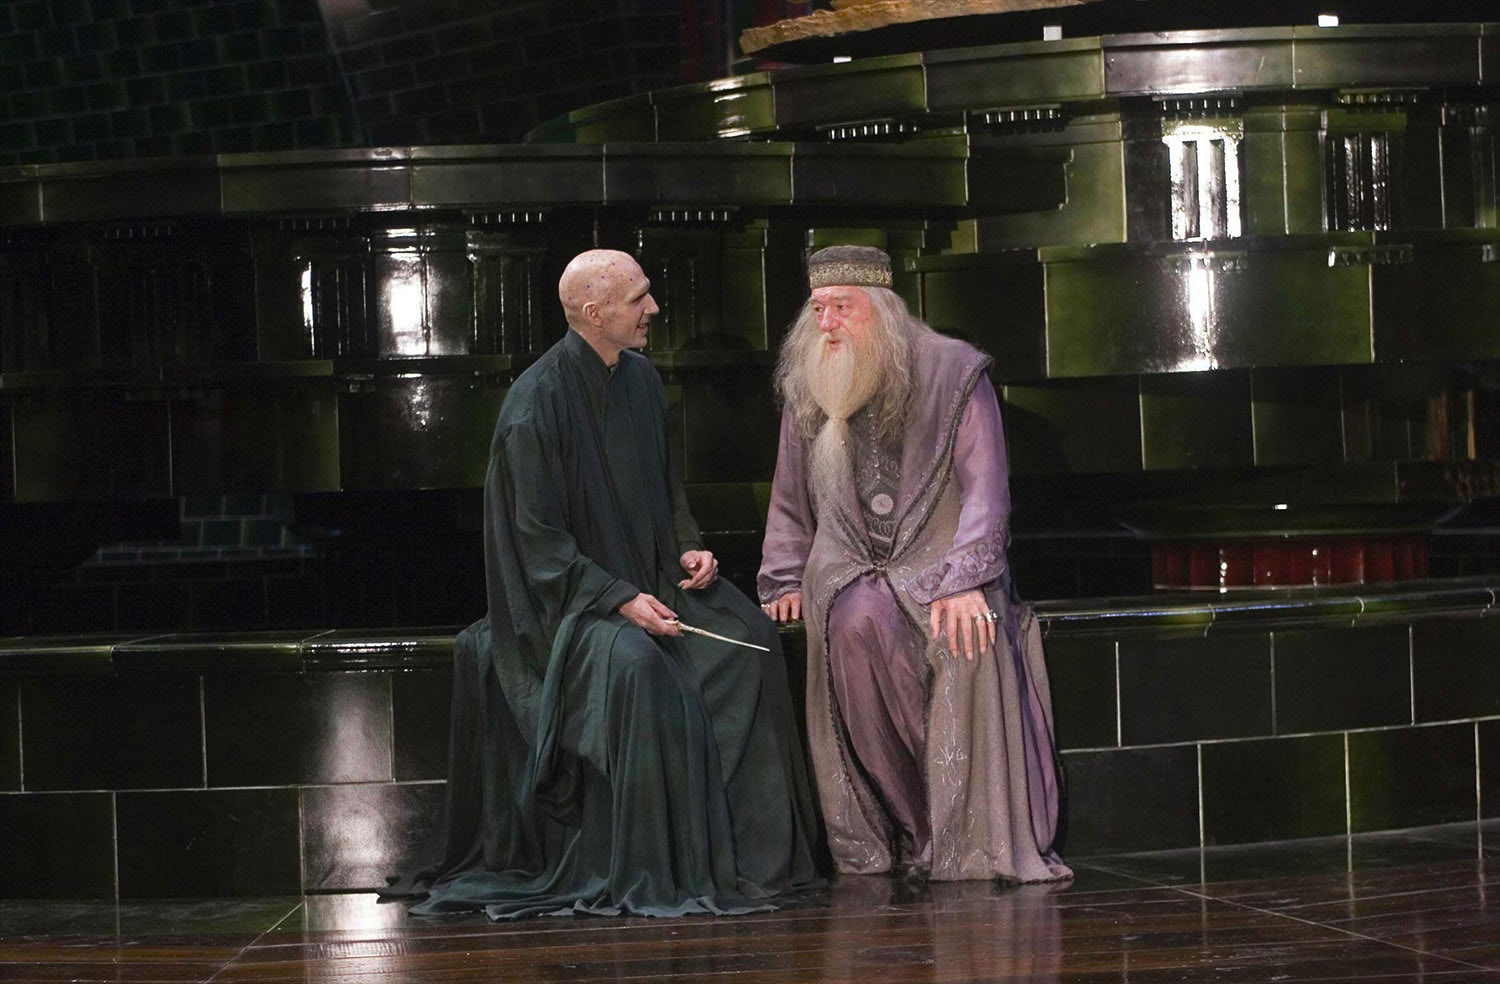 Ralph Fiennes and Michael Gambon in the Ministry of Magic